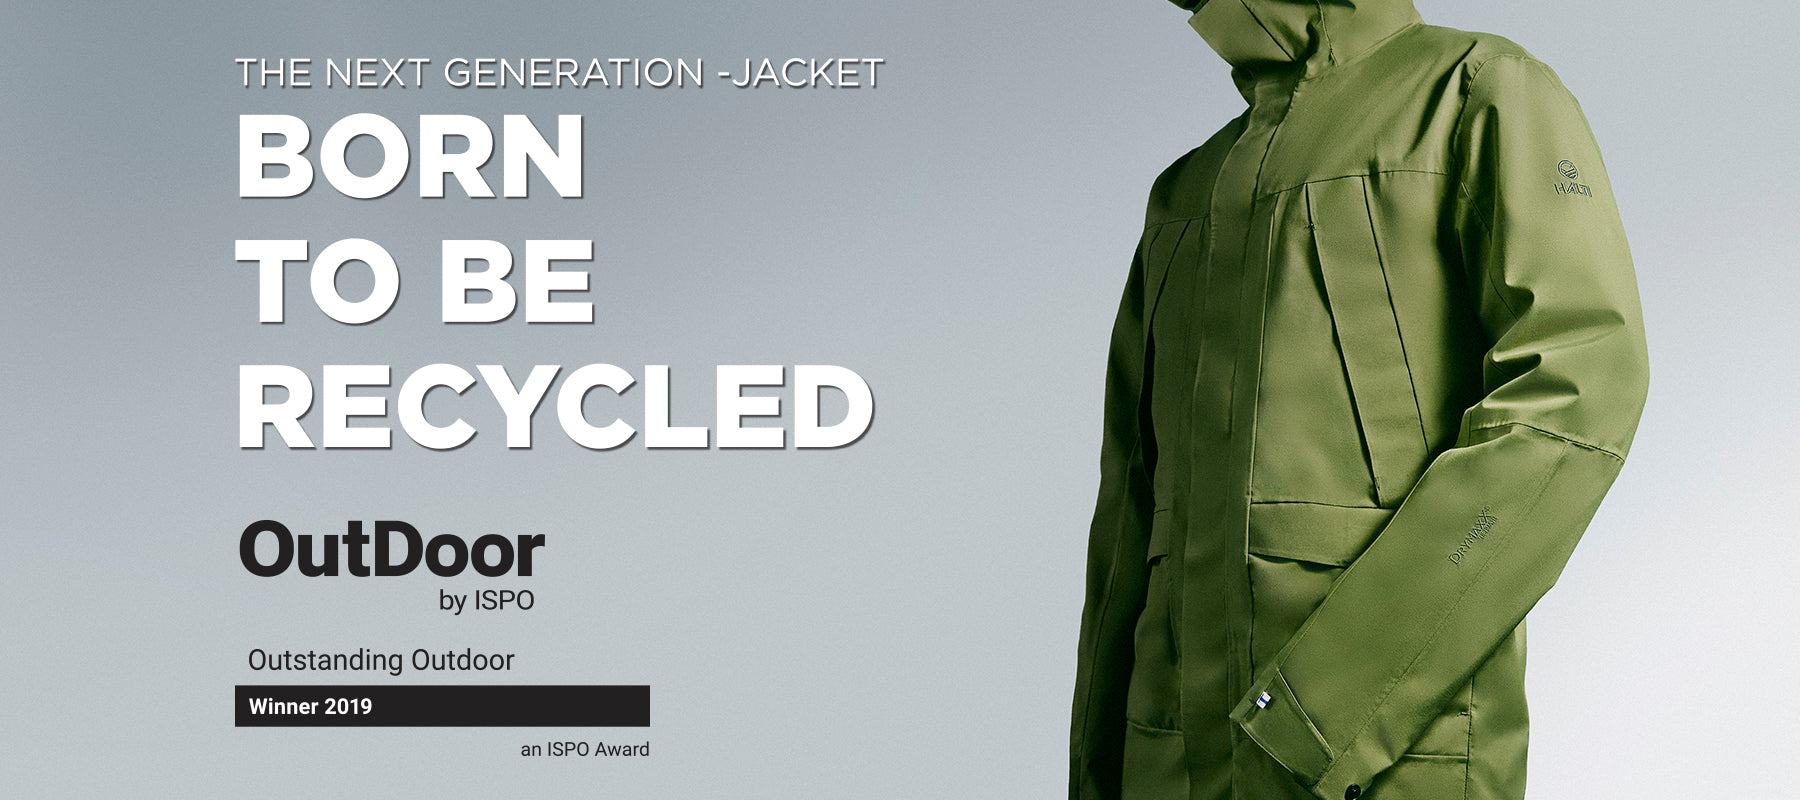 Born to be recycled – Outdoor by ISPO award winner product